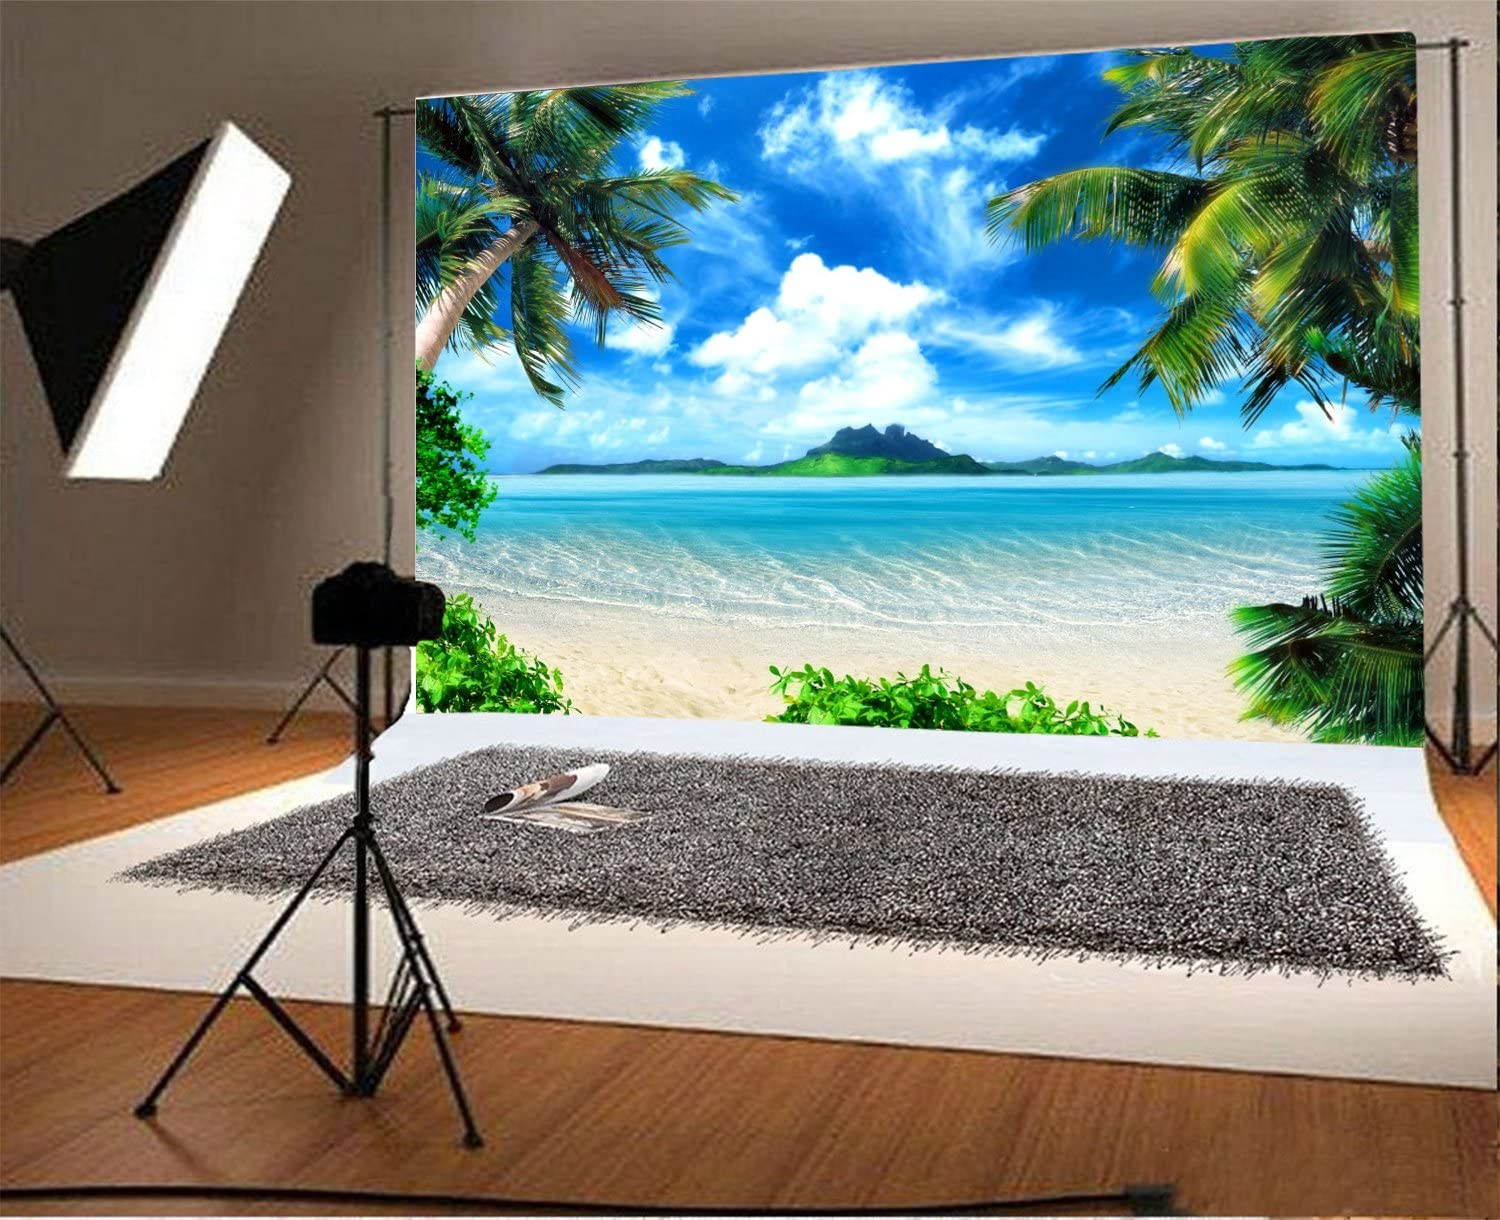 Leowefowa 16x10FT Sand Beach Backdrop Seaside Island Coconut Tree Blue Sky White Cloud Backdrops for Photography Kids Adults Summer Holiday Vinyl Photo Background Studio Props